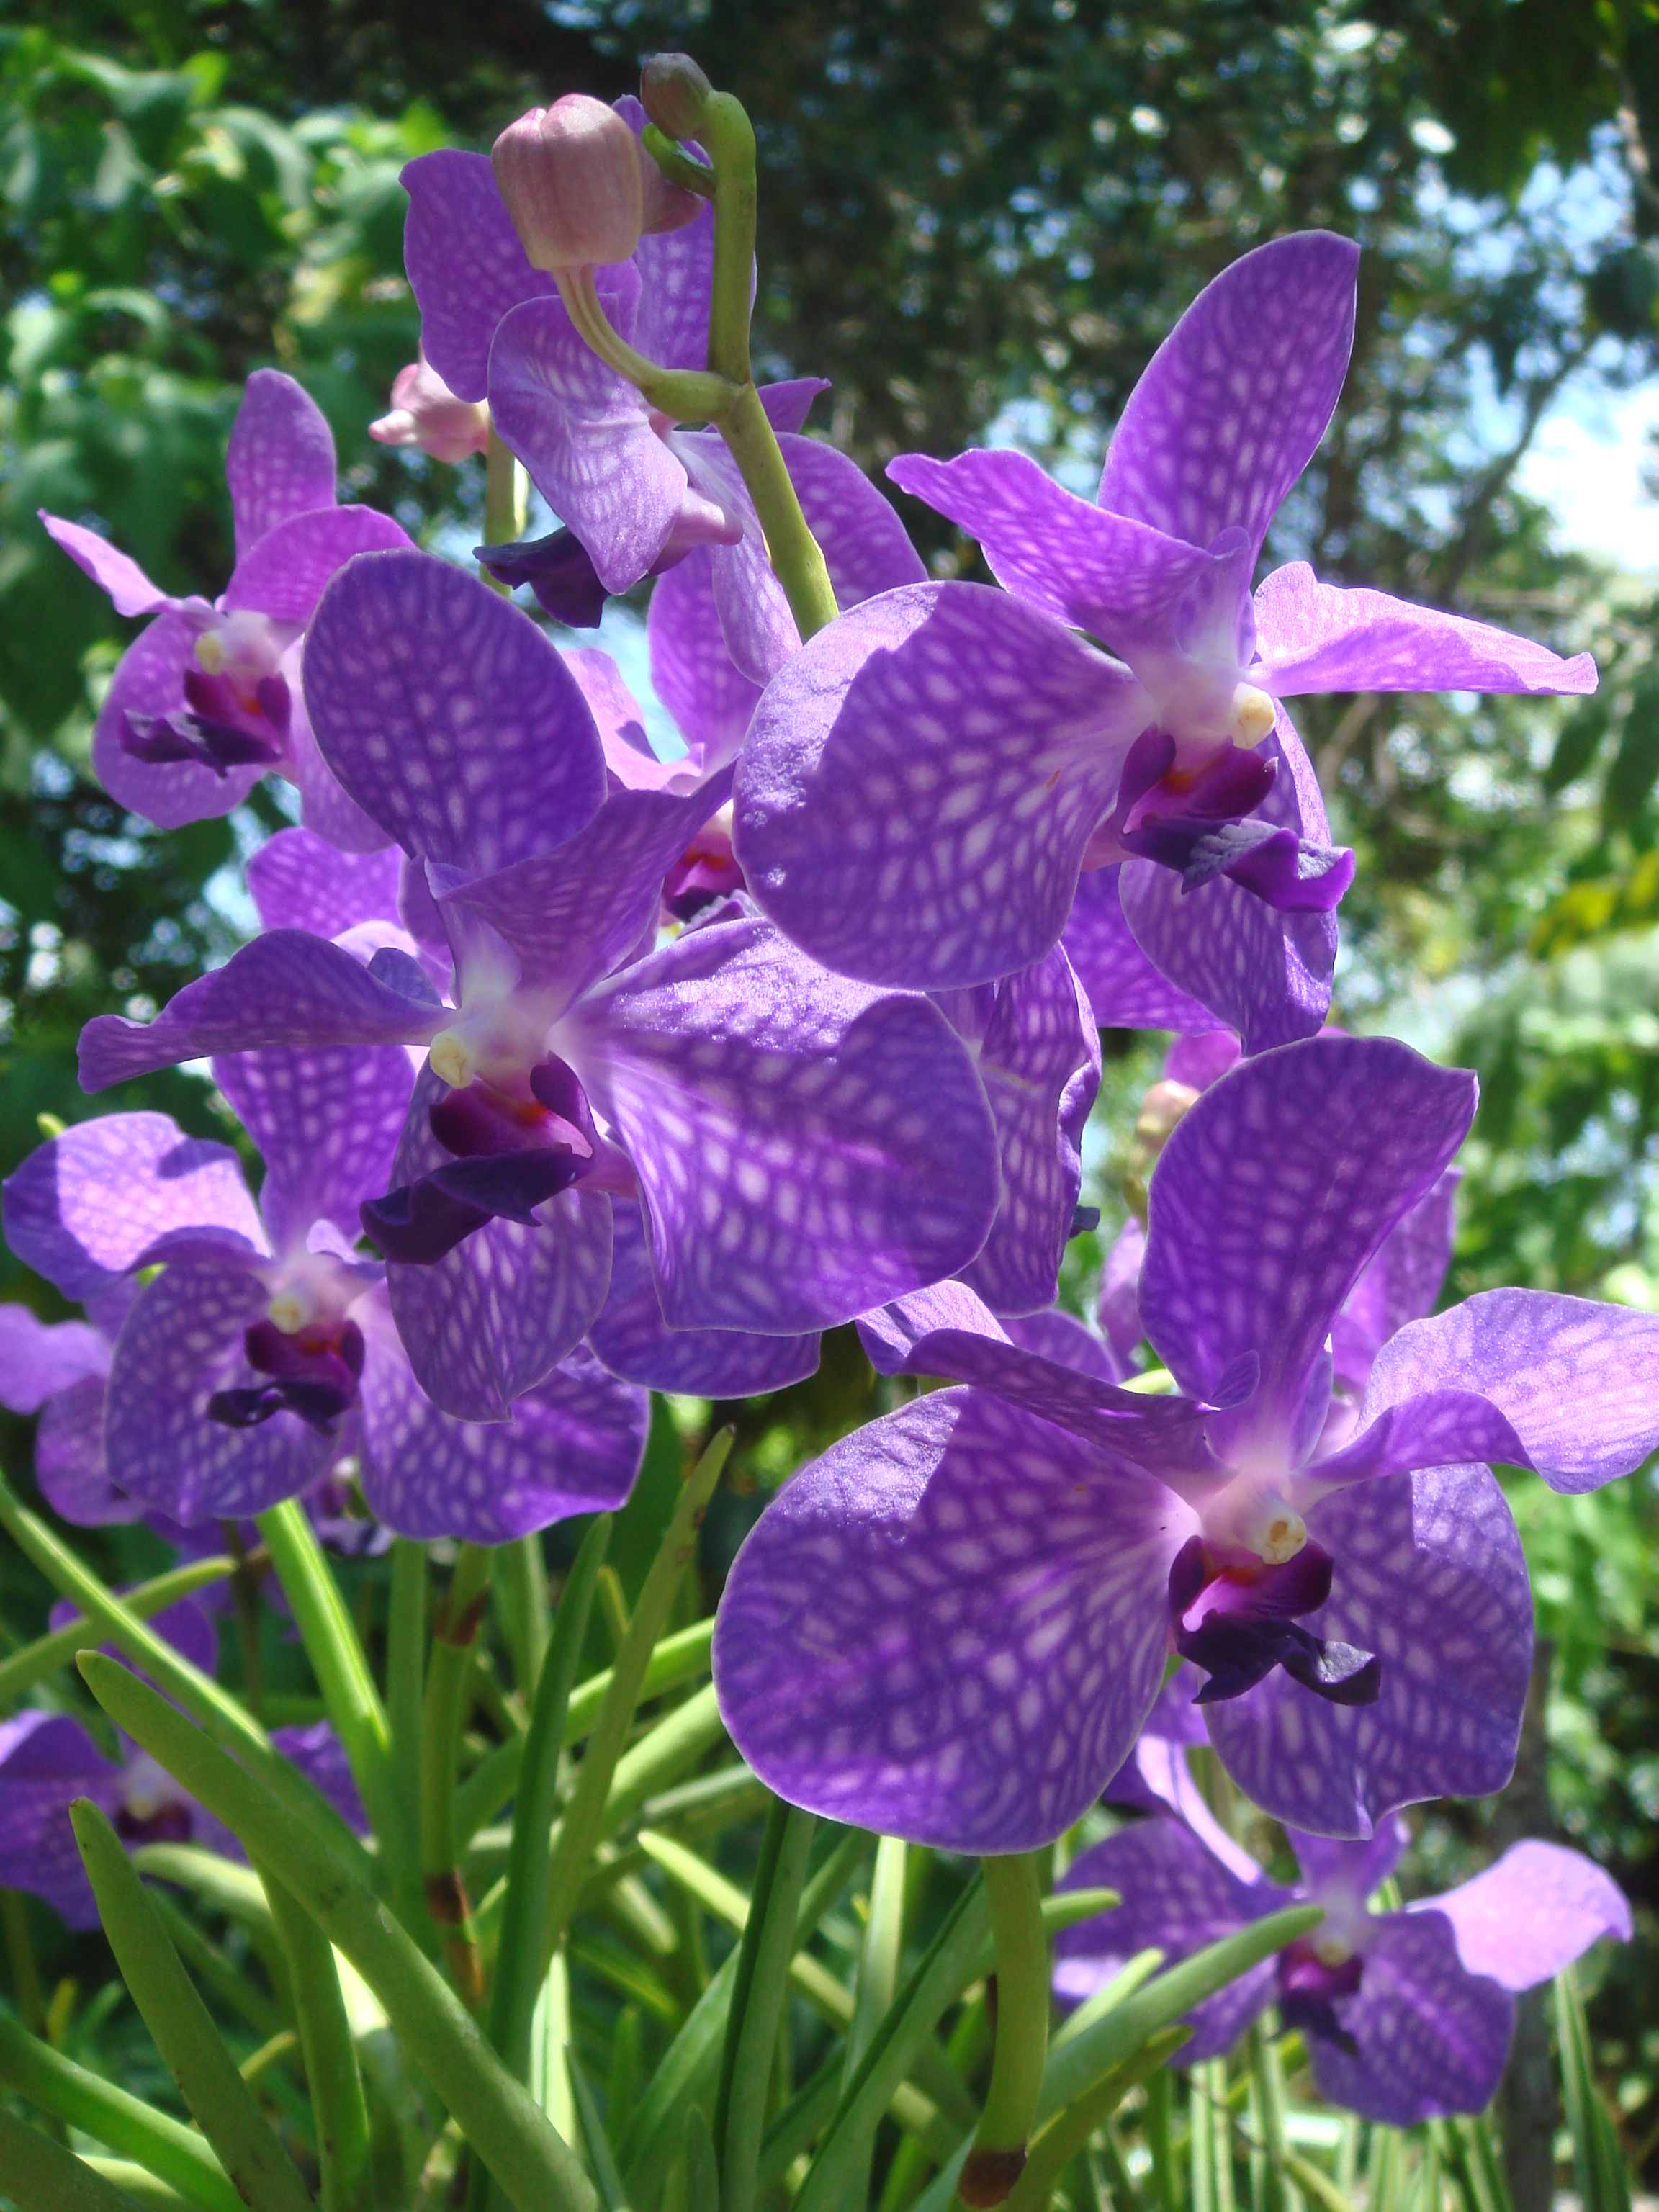 These purple orchids cannot exist because mutualism does not exist